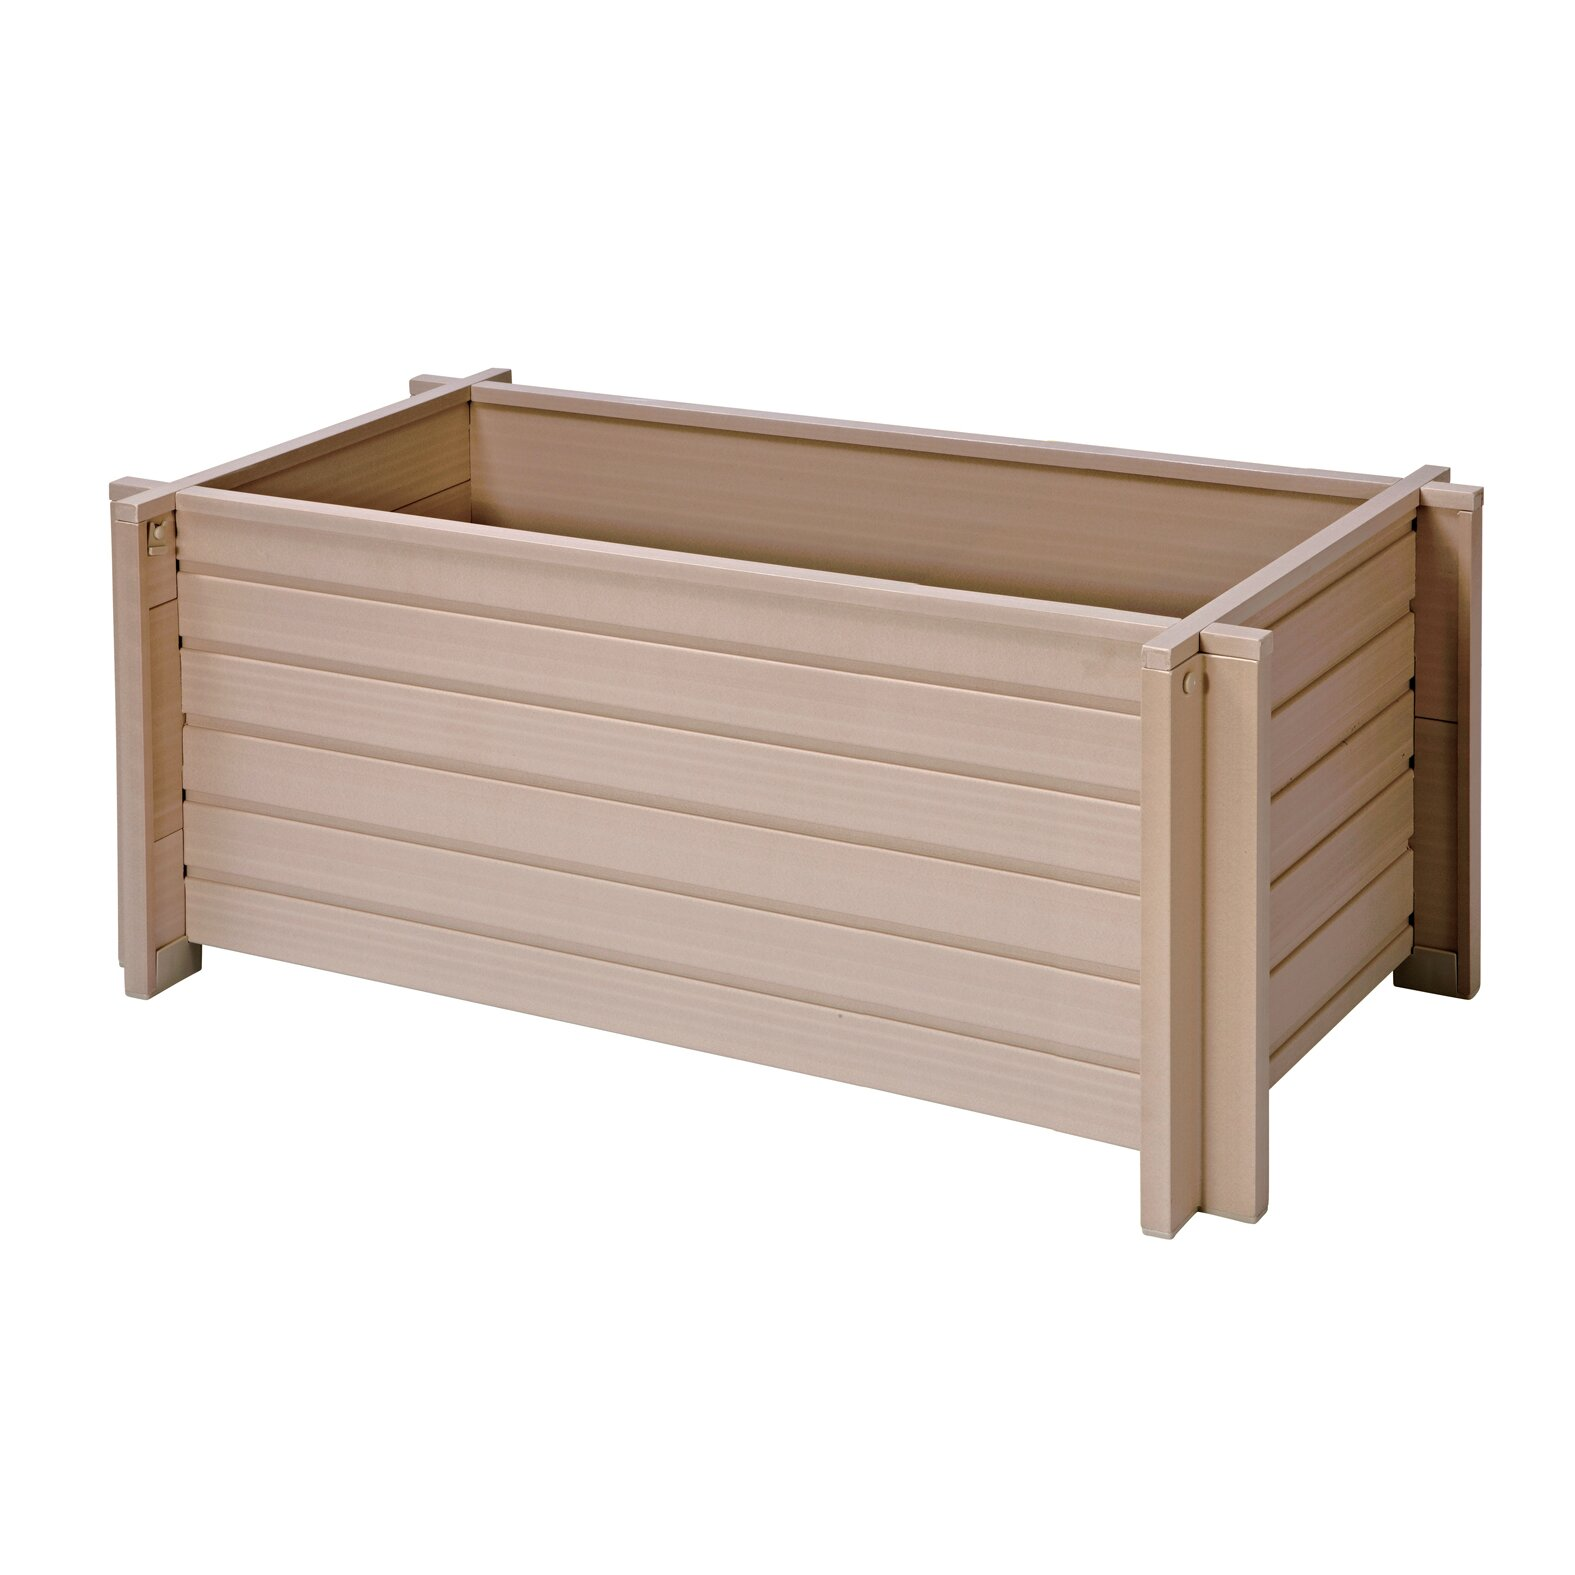 New Age Garden Plastic Planter Box Reviews Wayfair